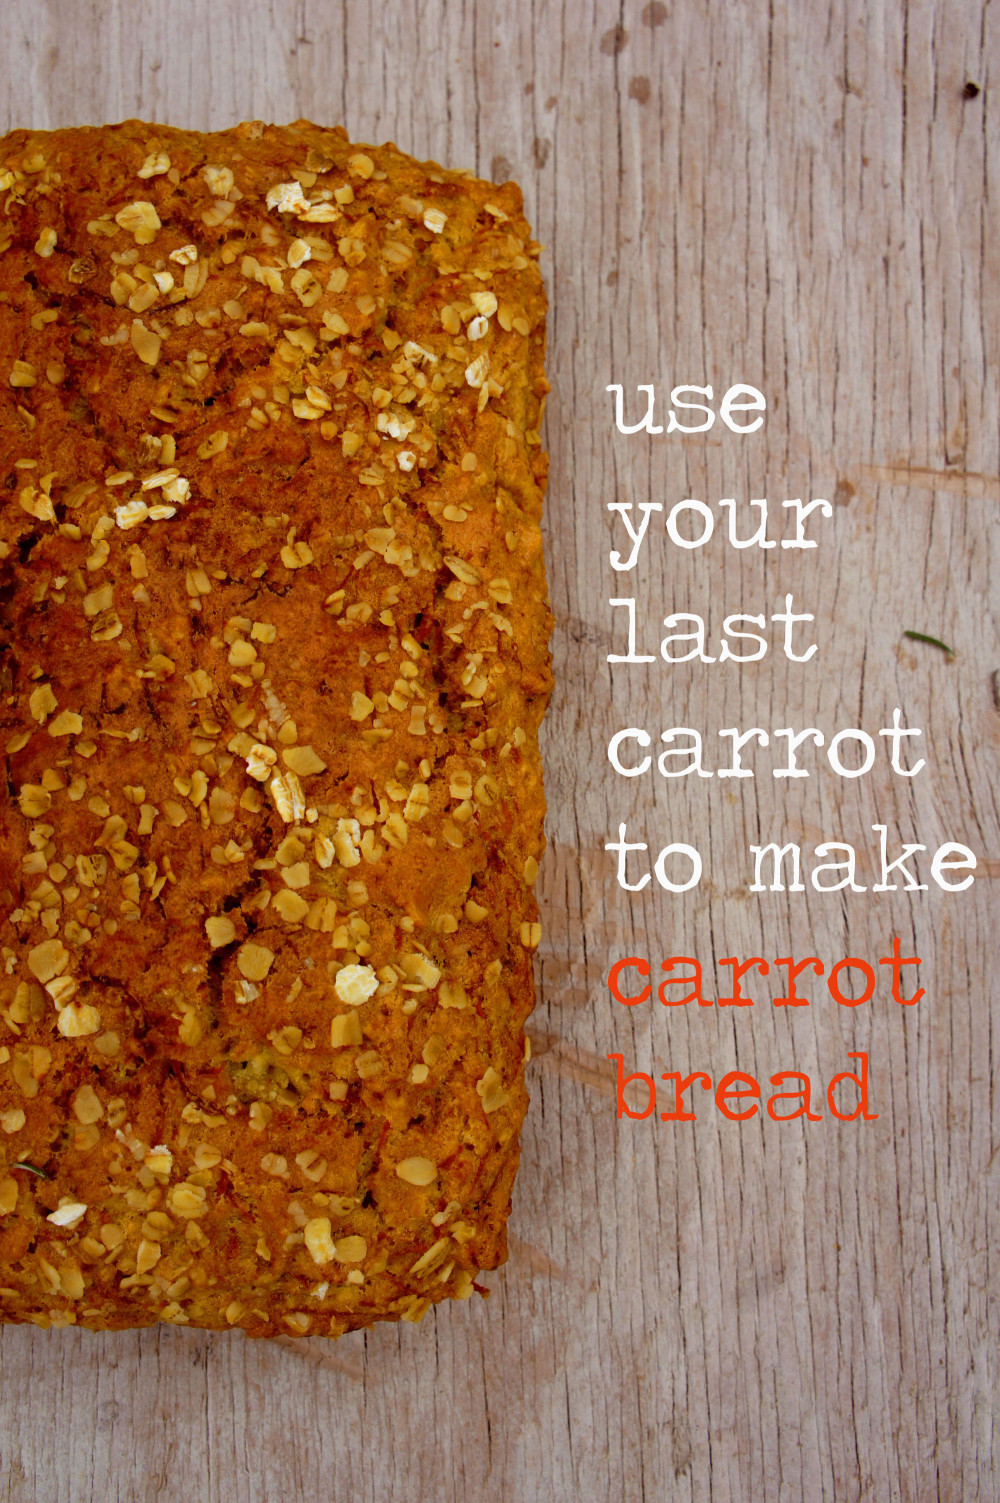 EAT AND DRINK YOUR CARROTS!